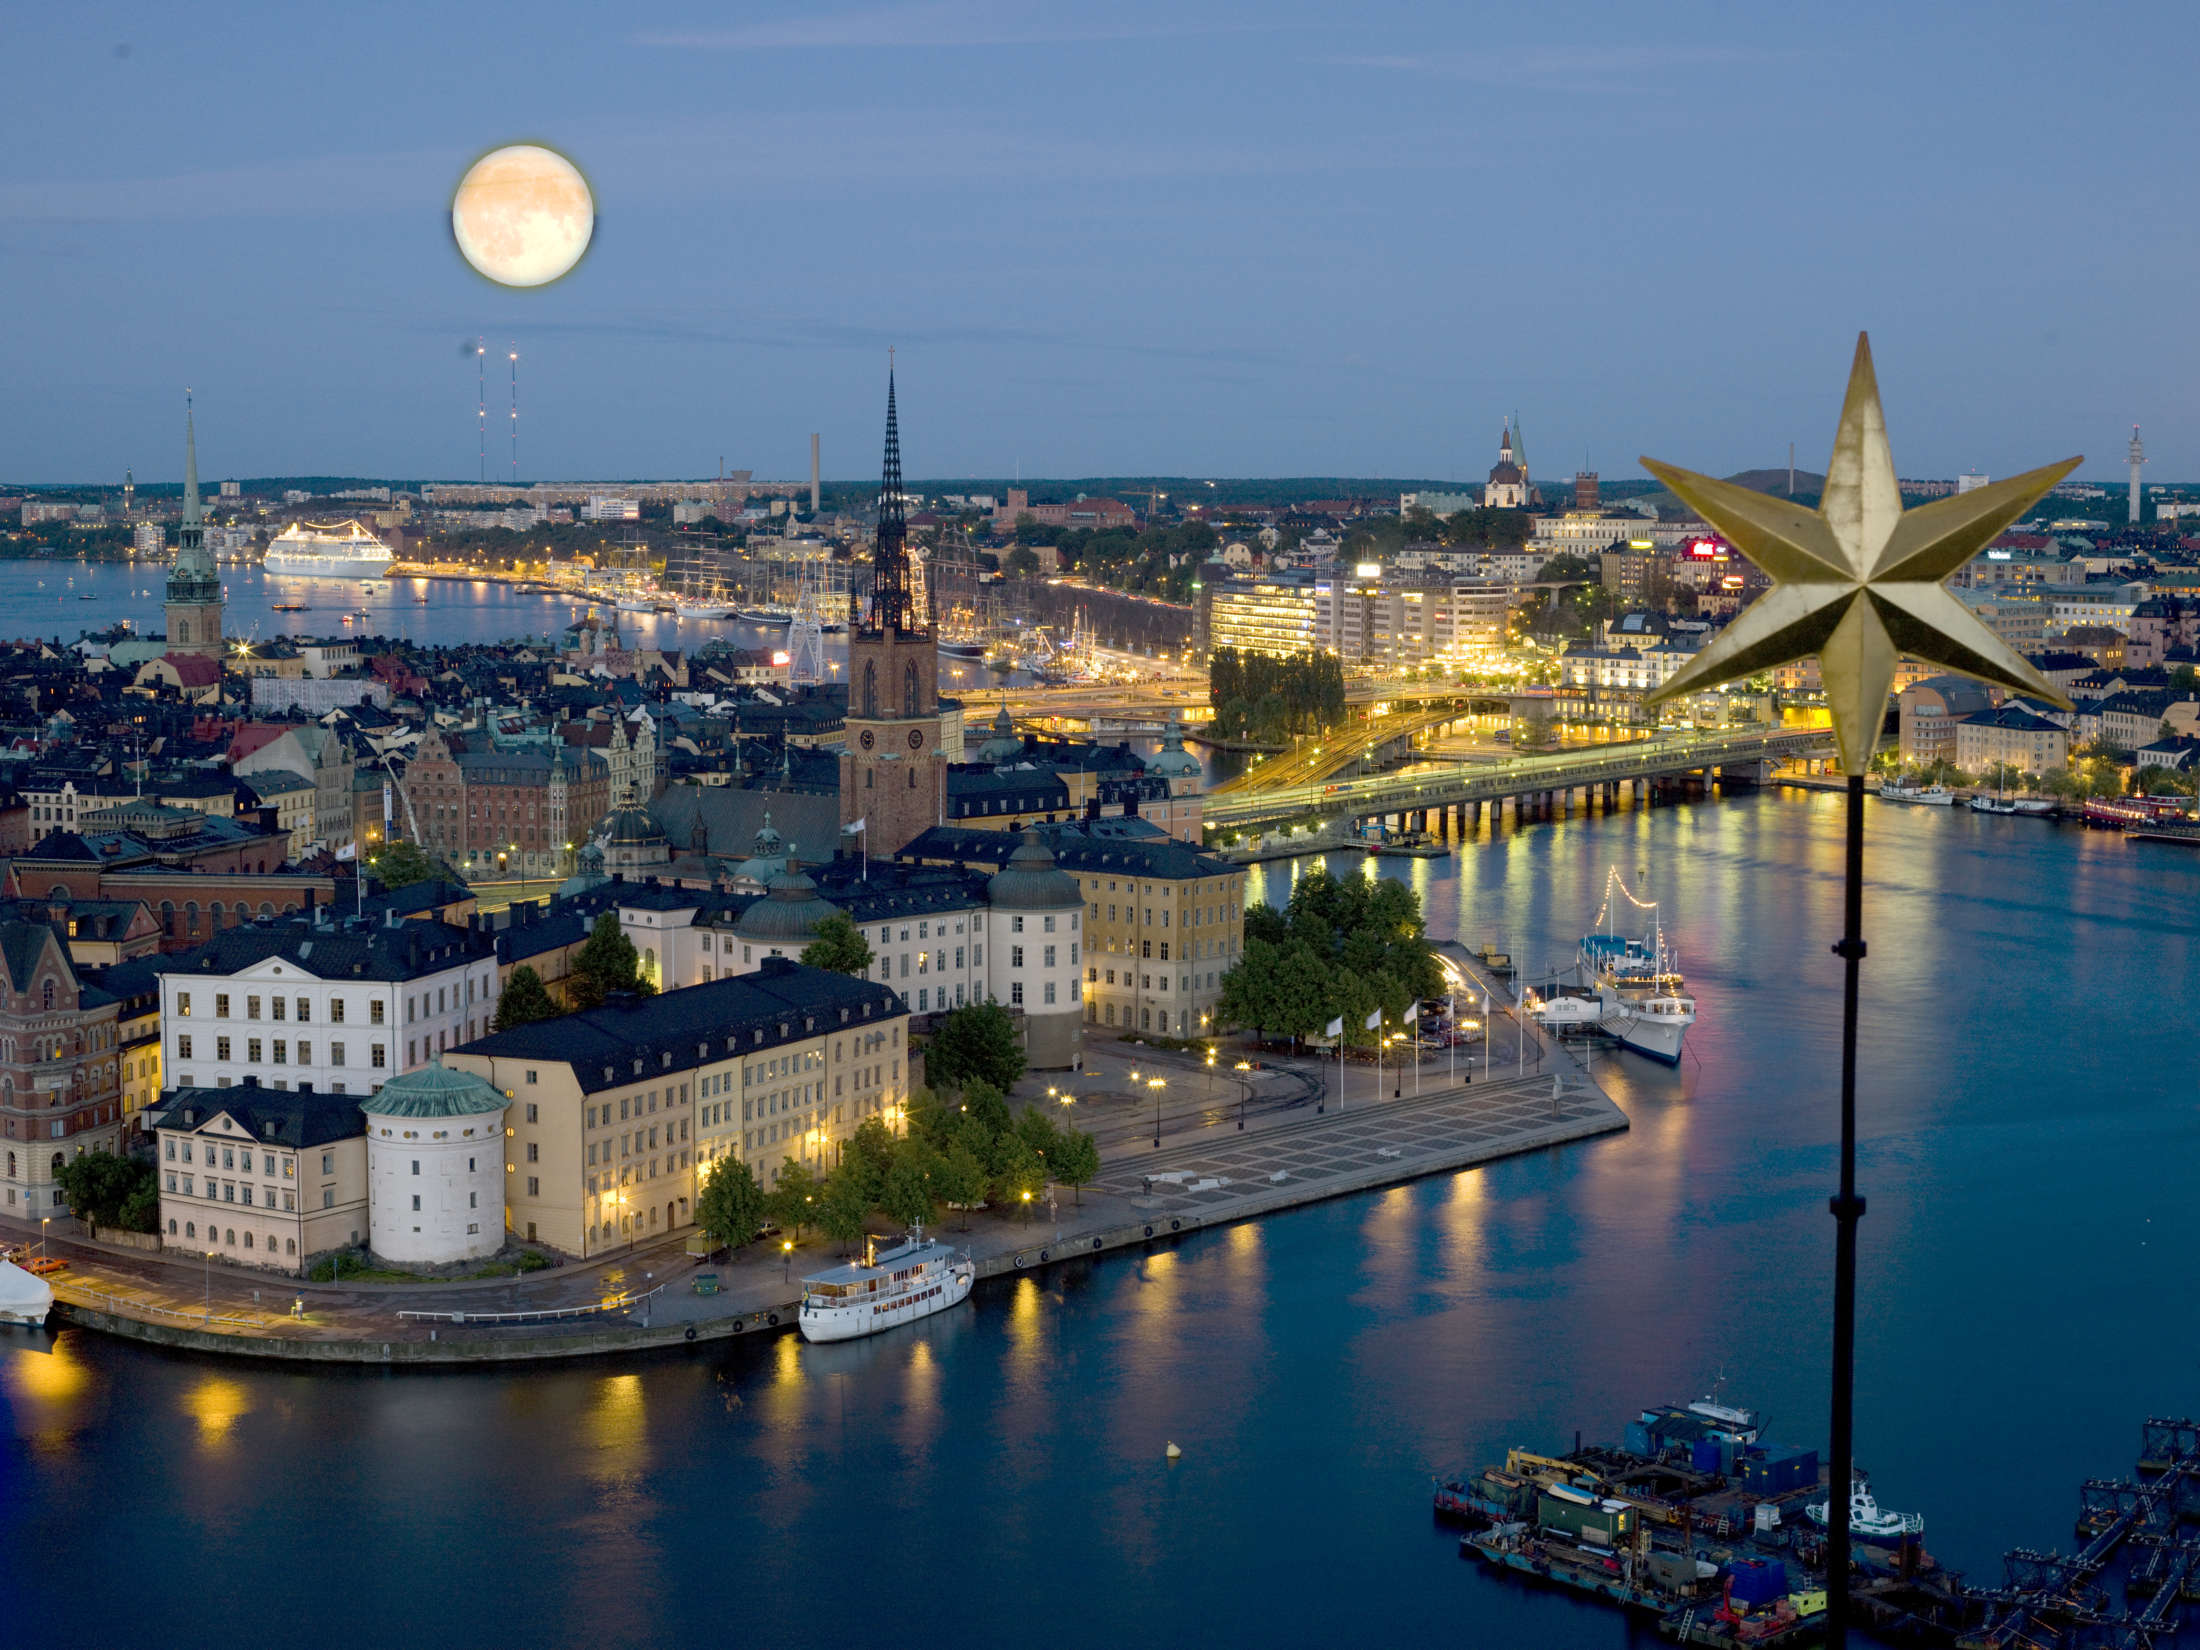 Summer night at Riddarholmen: 10 INSIGHTS FOR HR MANAGERS TO SHARE ABOUT WORKING IN SWEDEN